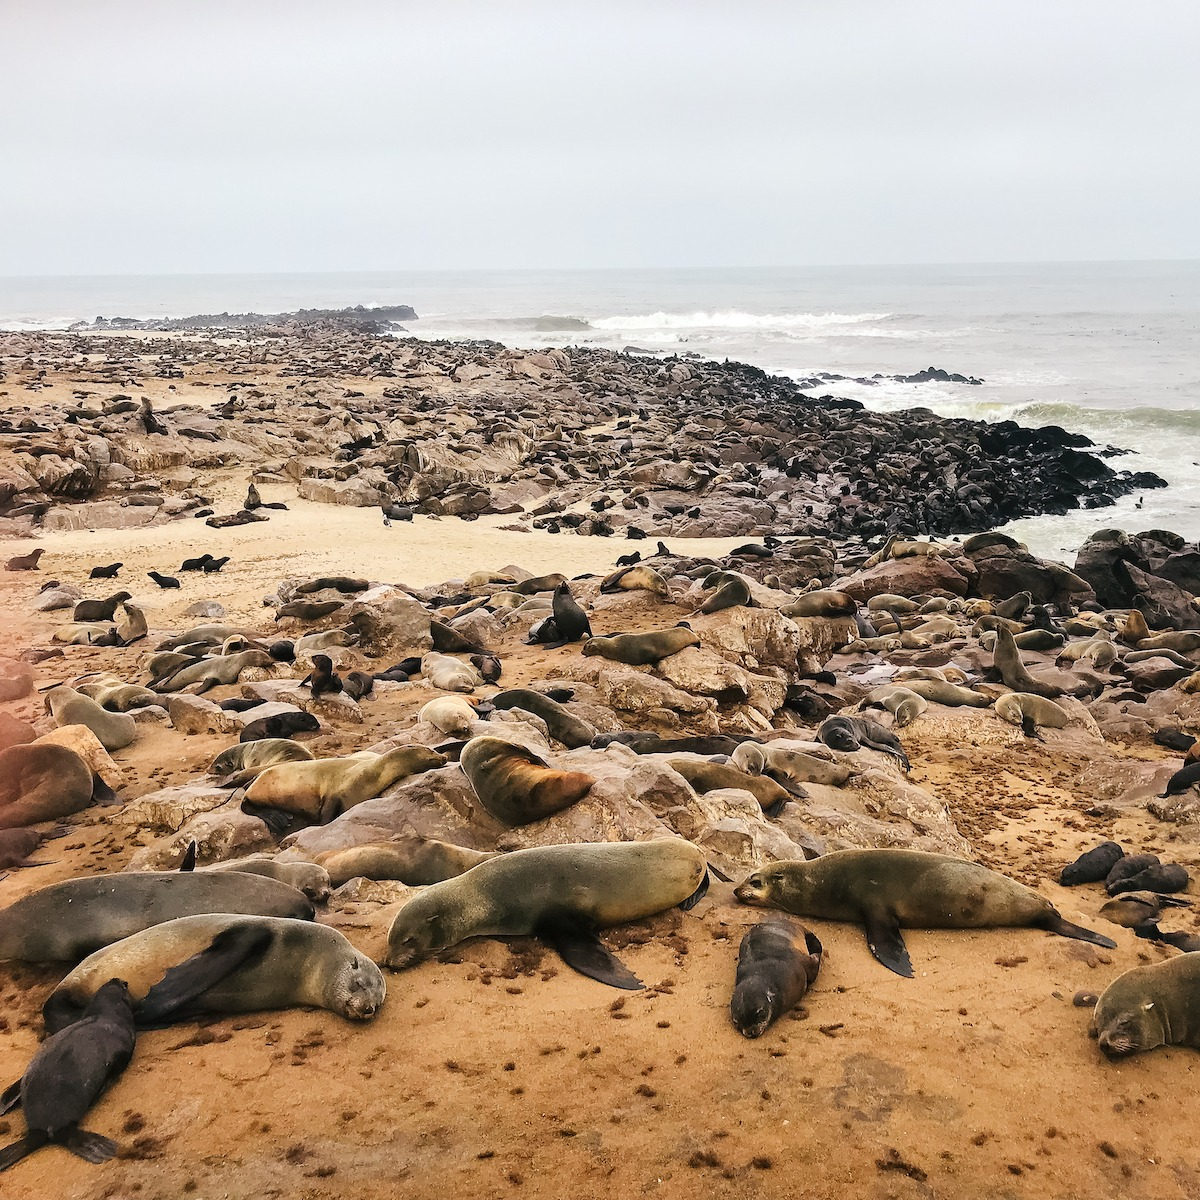 Seals in Namibia Dream Destinations